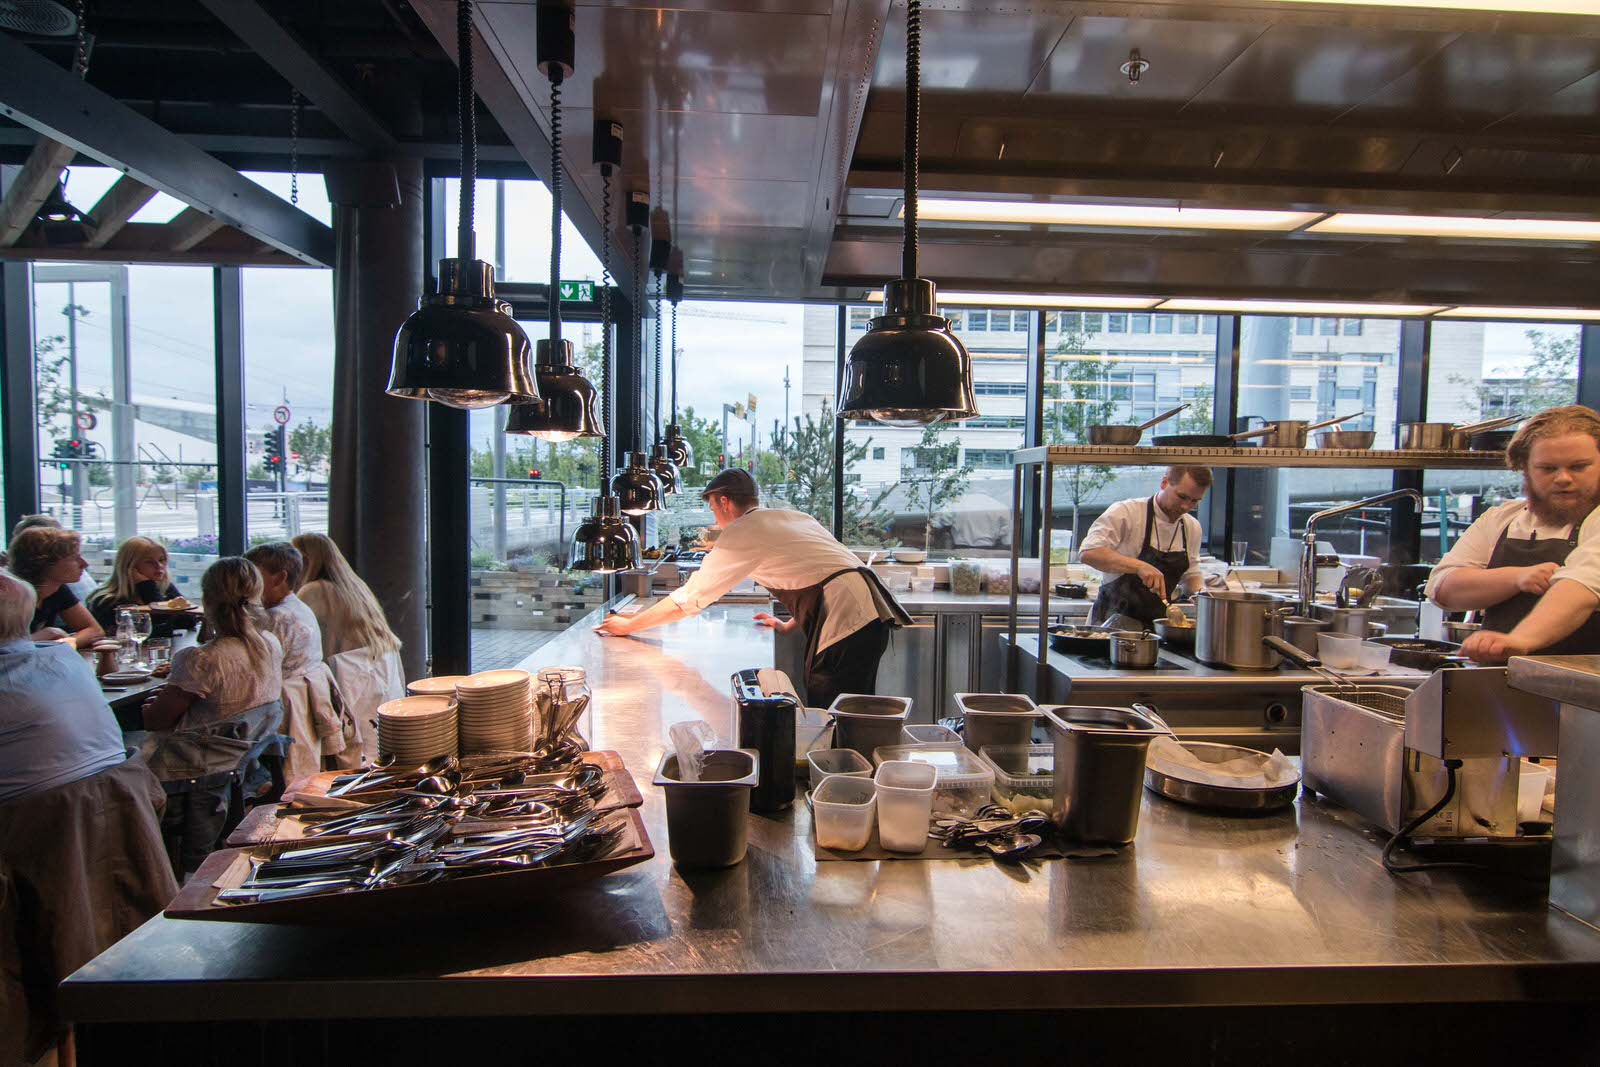 The open kitchen at Vaaghals. Photo by: Arnold Lan.